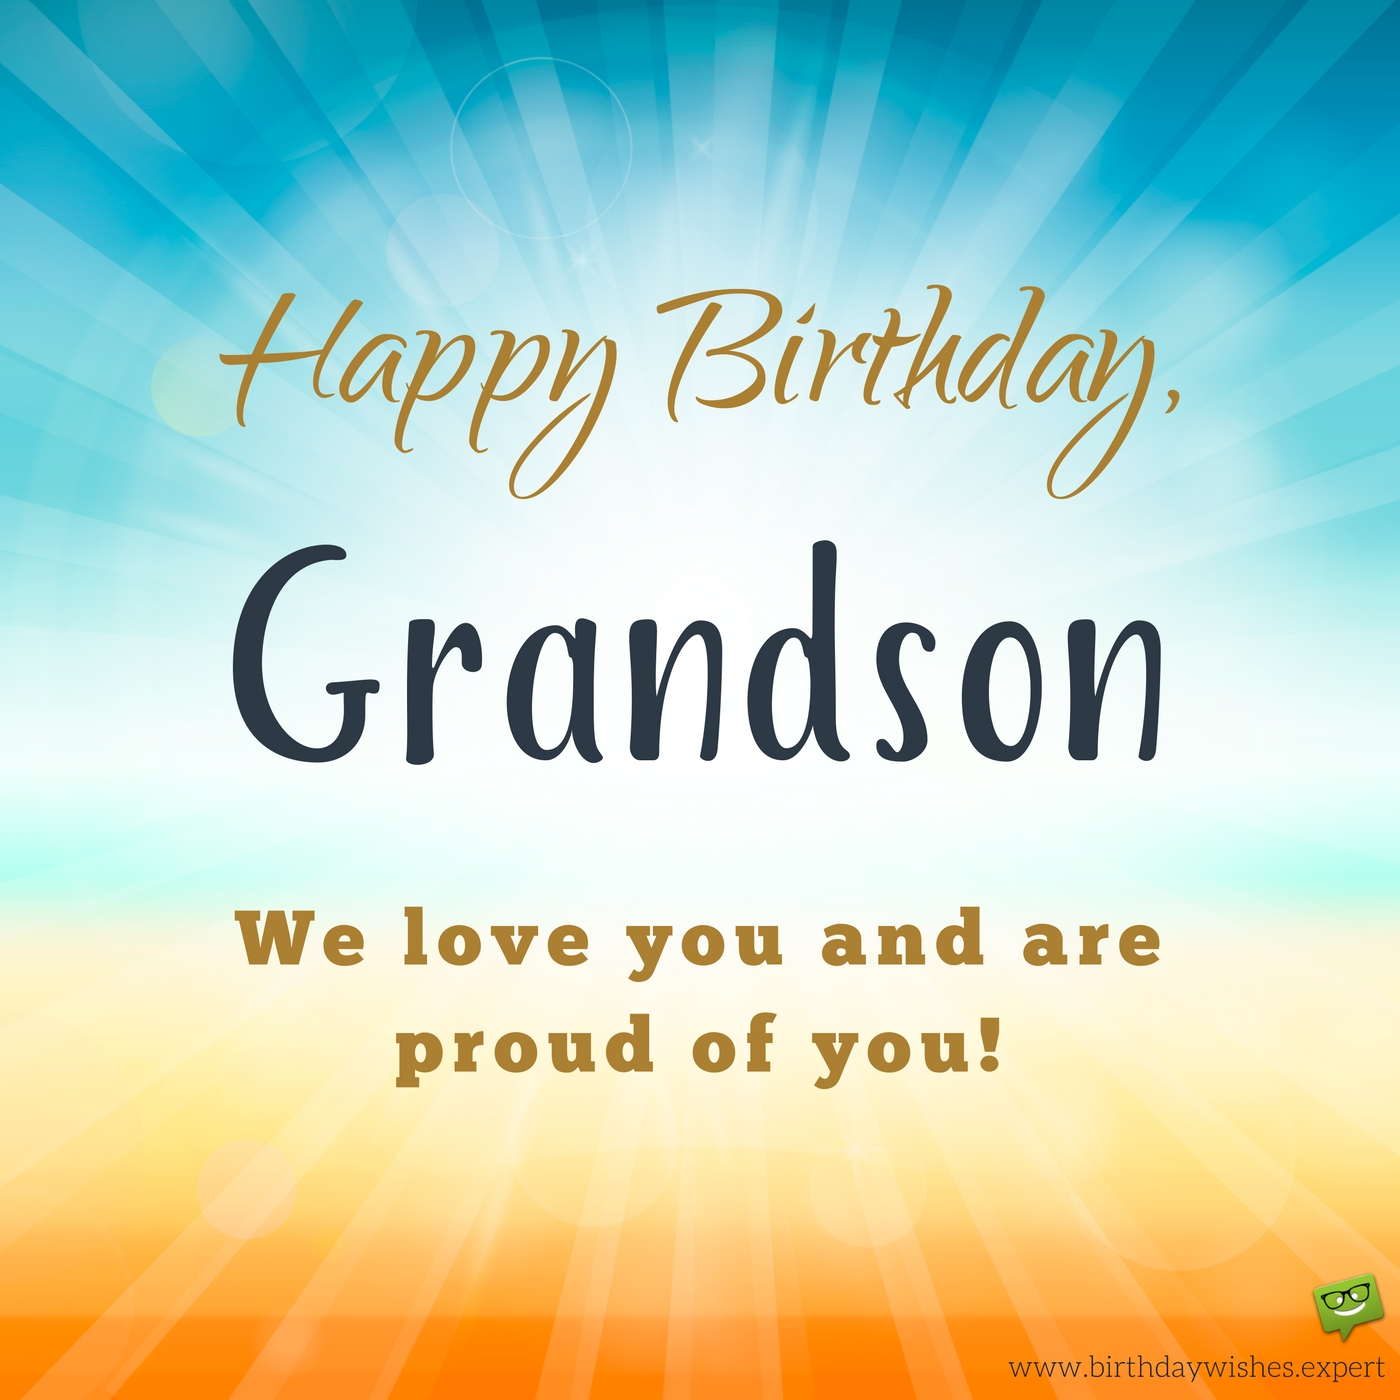 Happy Birthday Grandson We Grandchild Birthday Meme